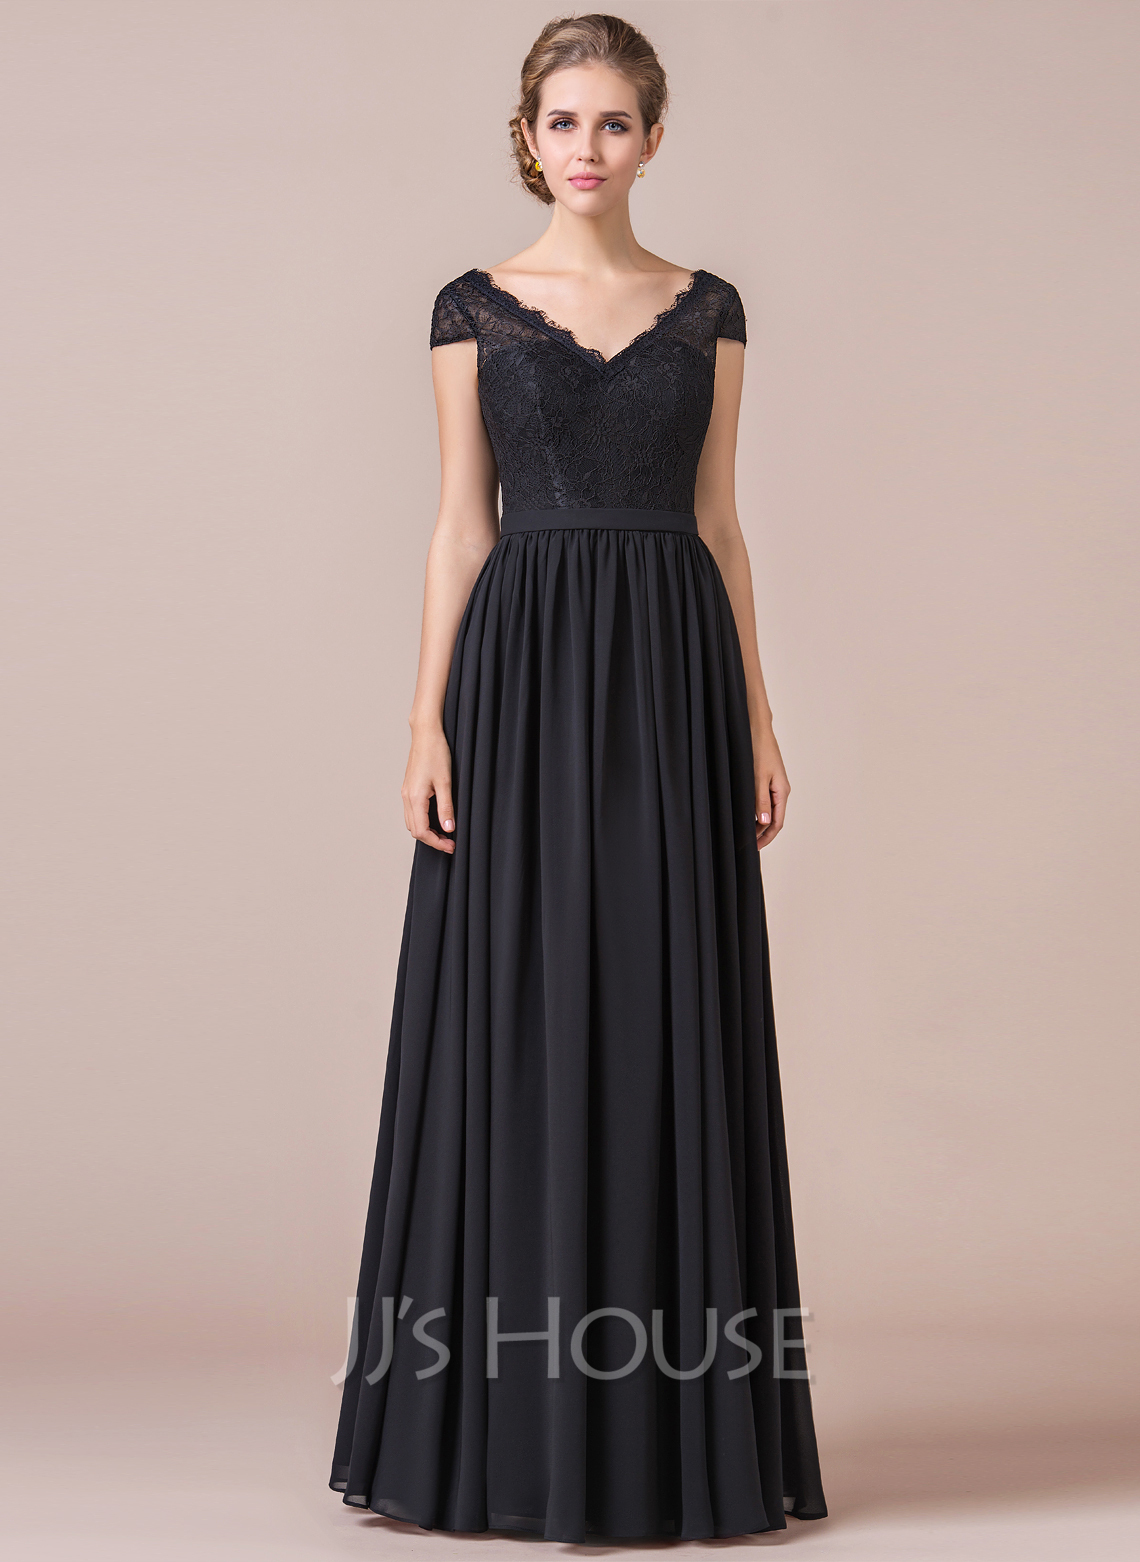 A Line Princess V Neck Floor Length Chiffon Lace Bridesmaid Dress Loading Zoom